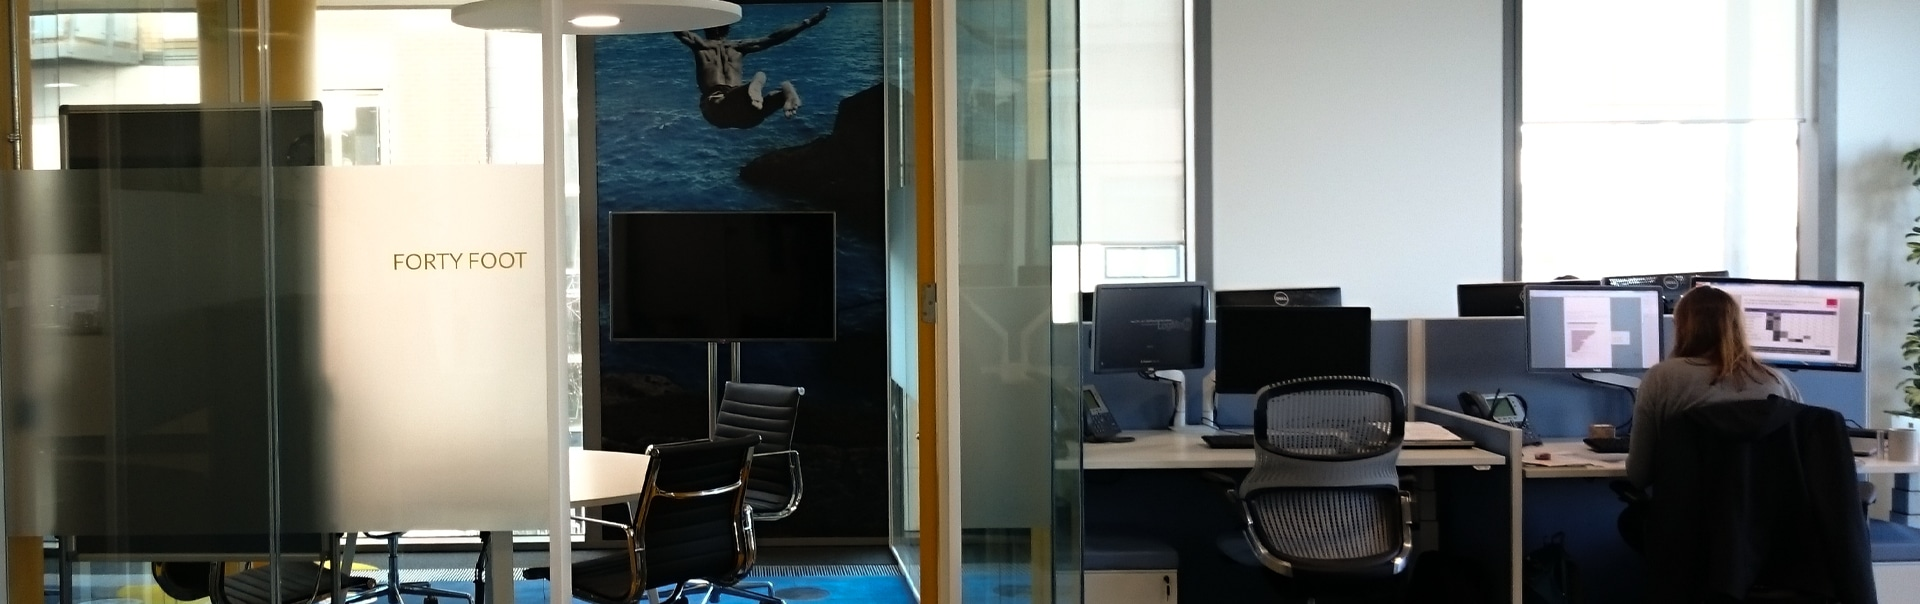 Famous Dublin landmarks are the theme for these meeting room manifestations and interiors